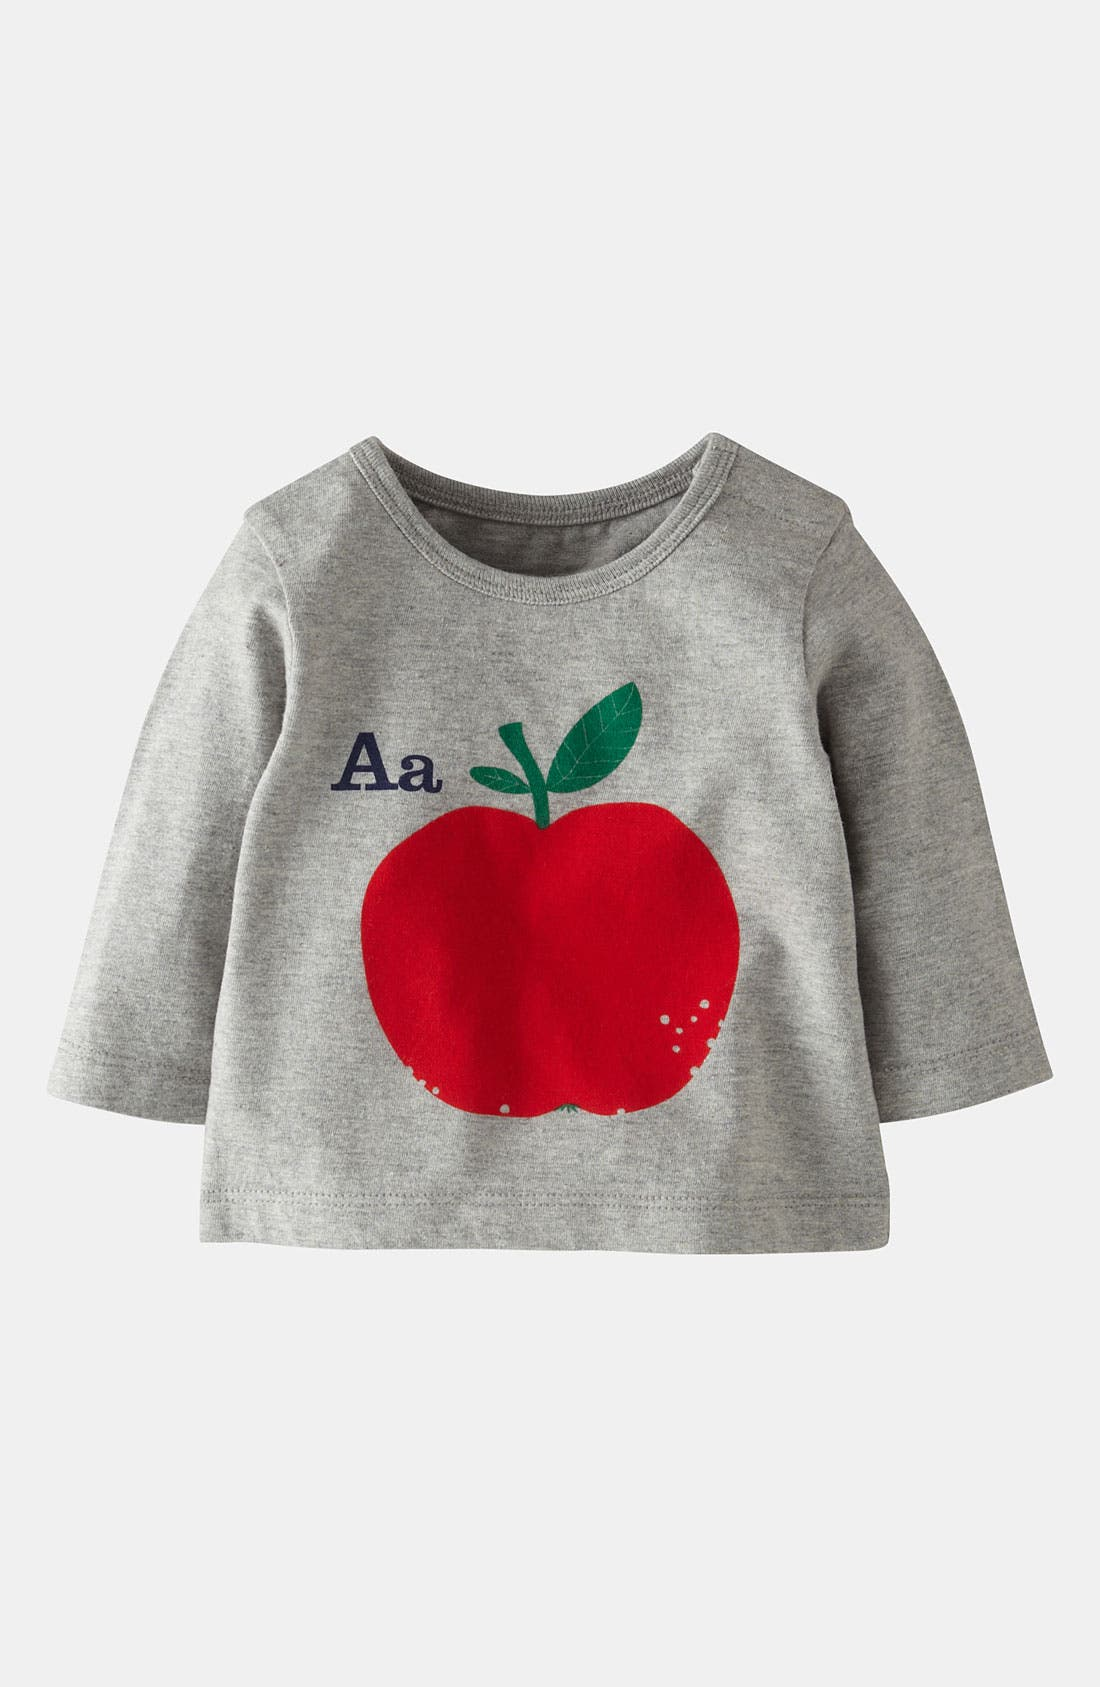 Alternate Image 1 Selected - Mini Boden 'Alphabet Print' T-Shirt (Infant)